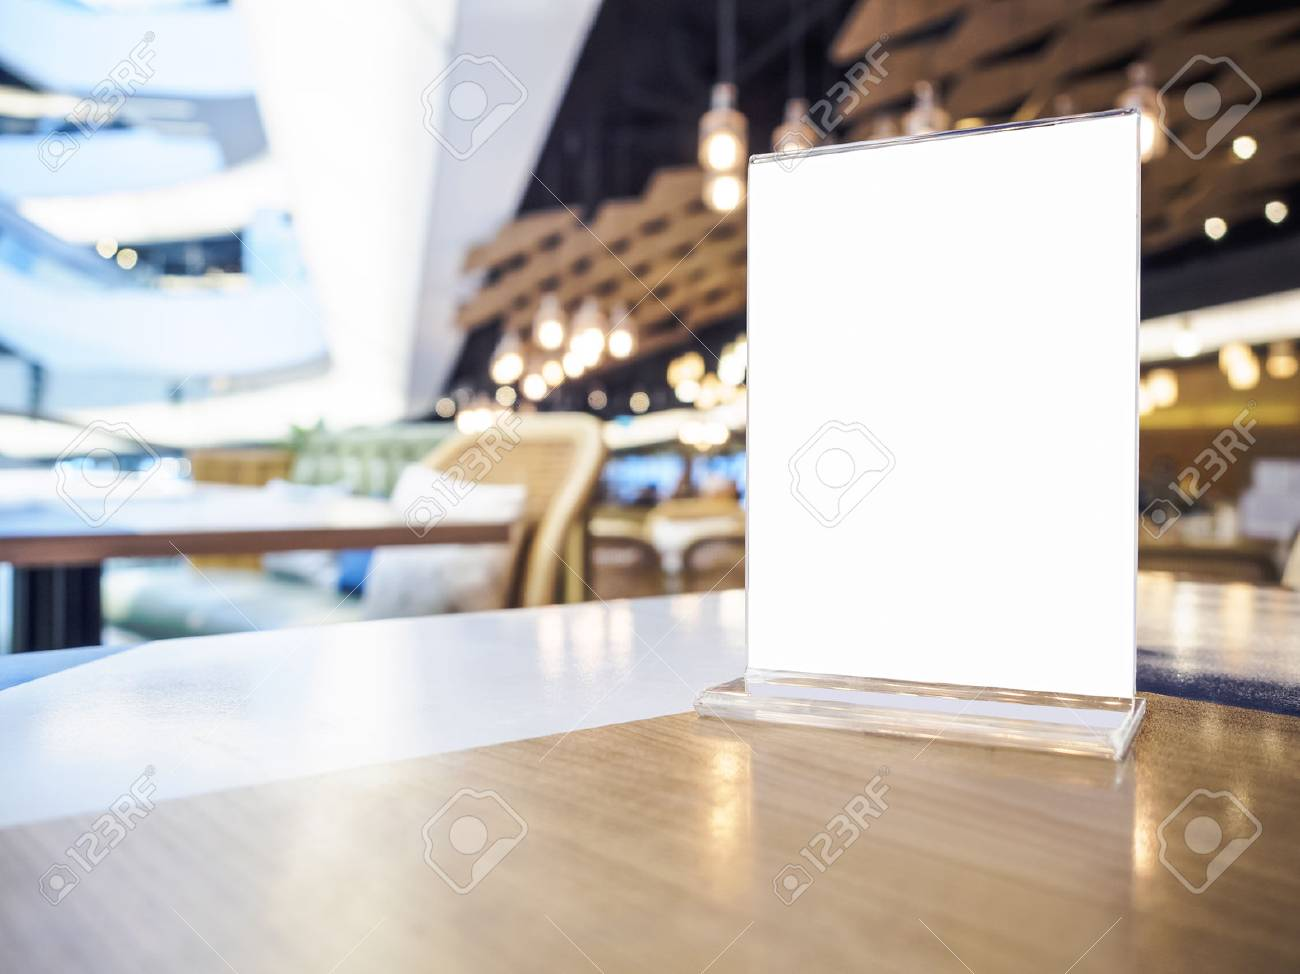 Mock Up Menu On Table Bar Restaurant Cafe Event Party Lighting Stock Photo Picture And Royalty Free Image Image 71440042